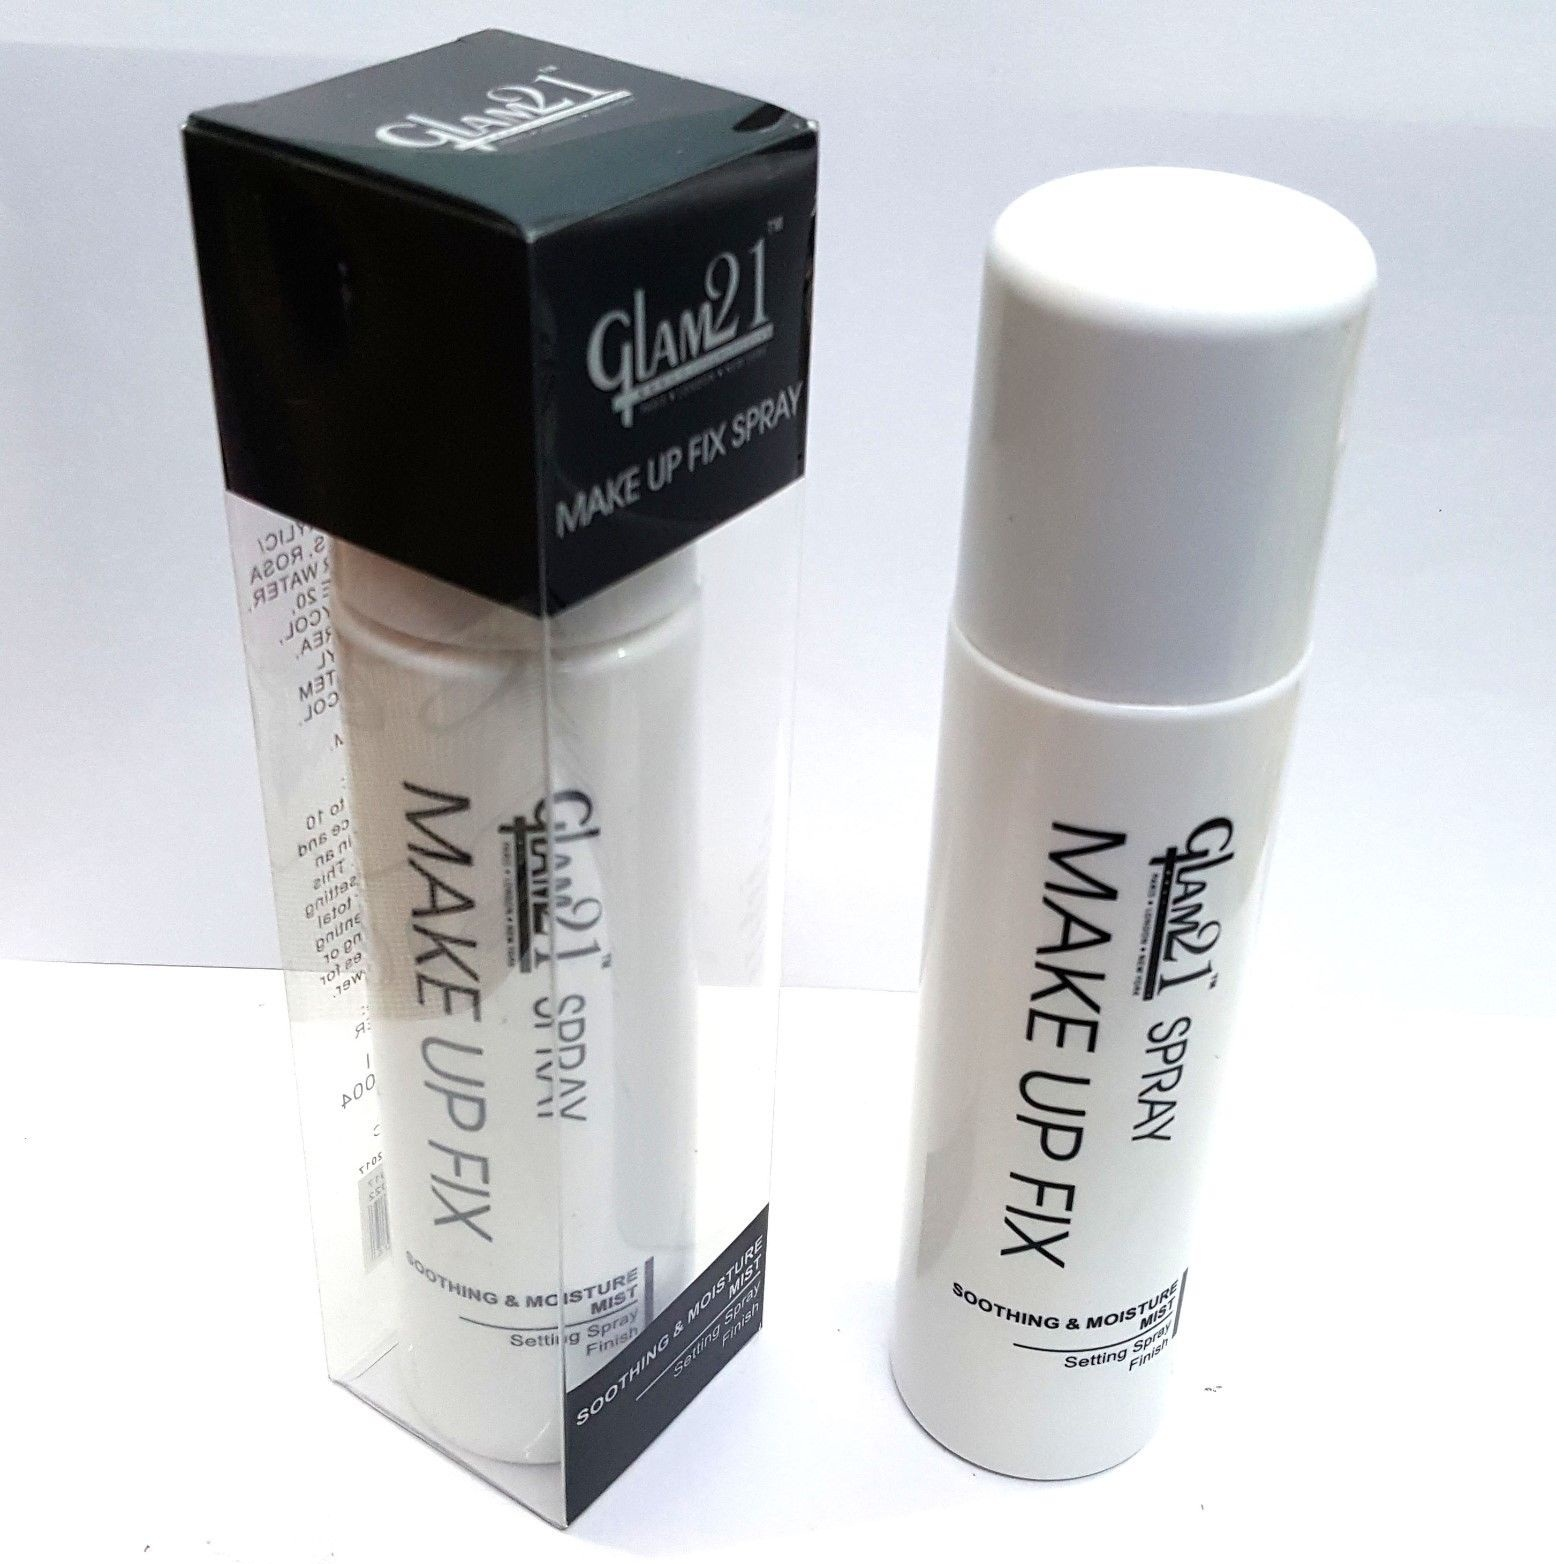 Glam21 Makup Fixer setting spray